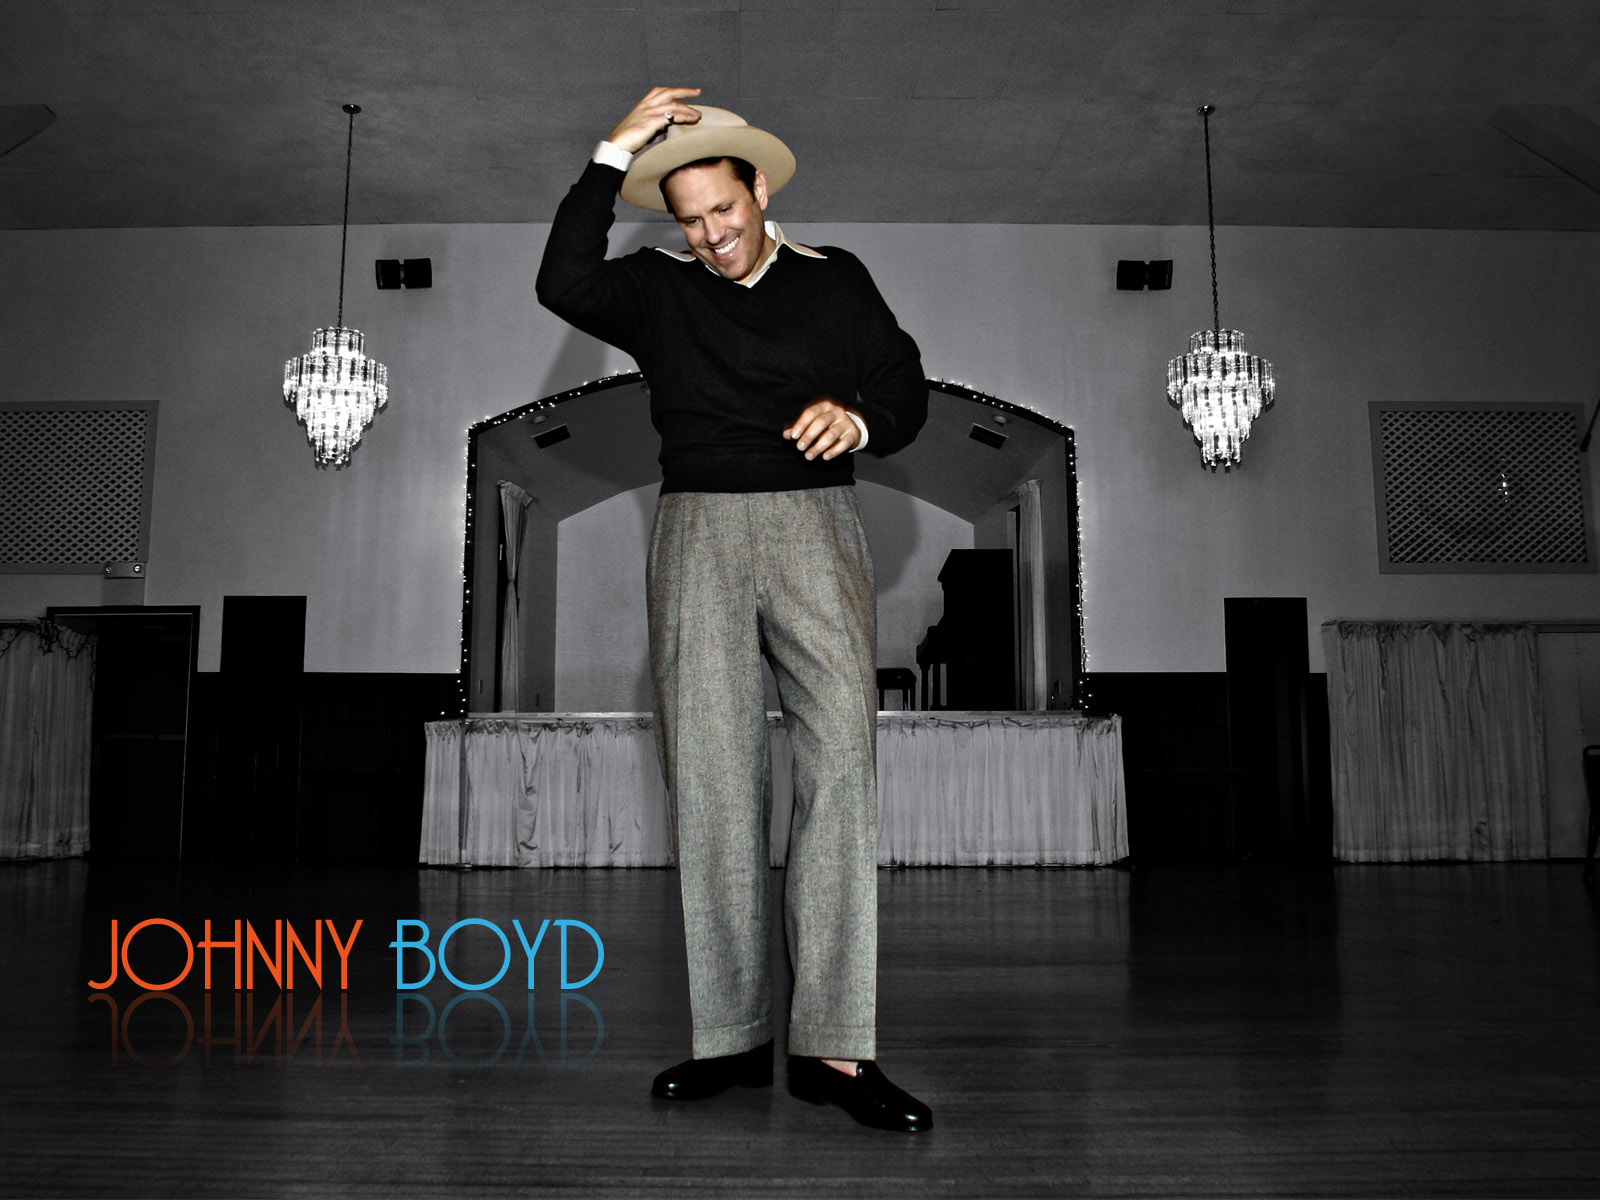 Johnny_Boyd_Wallpaper3_1600x1200.jpg